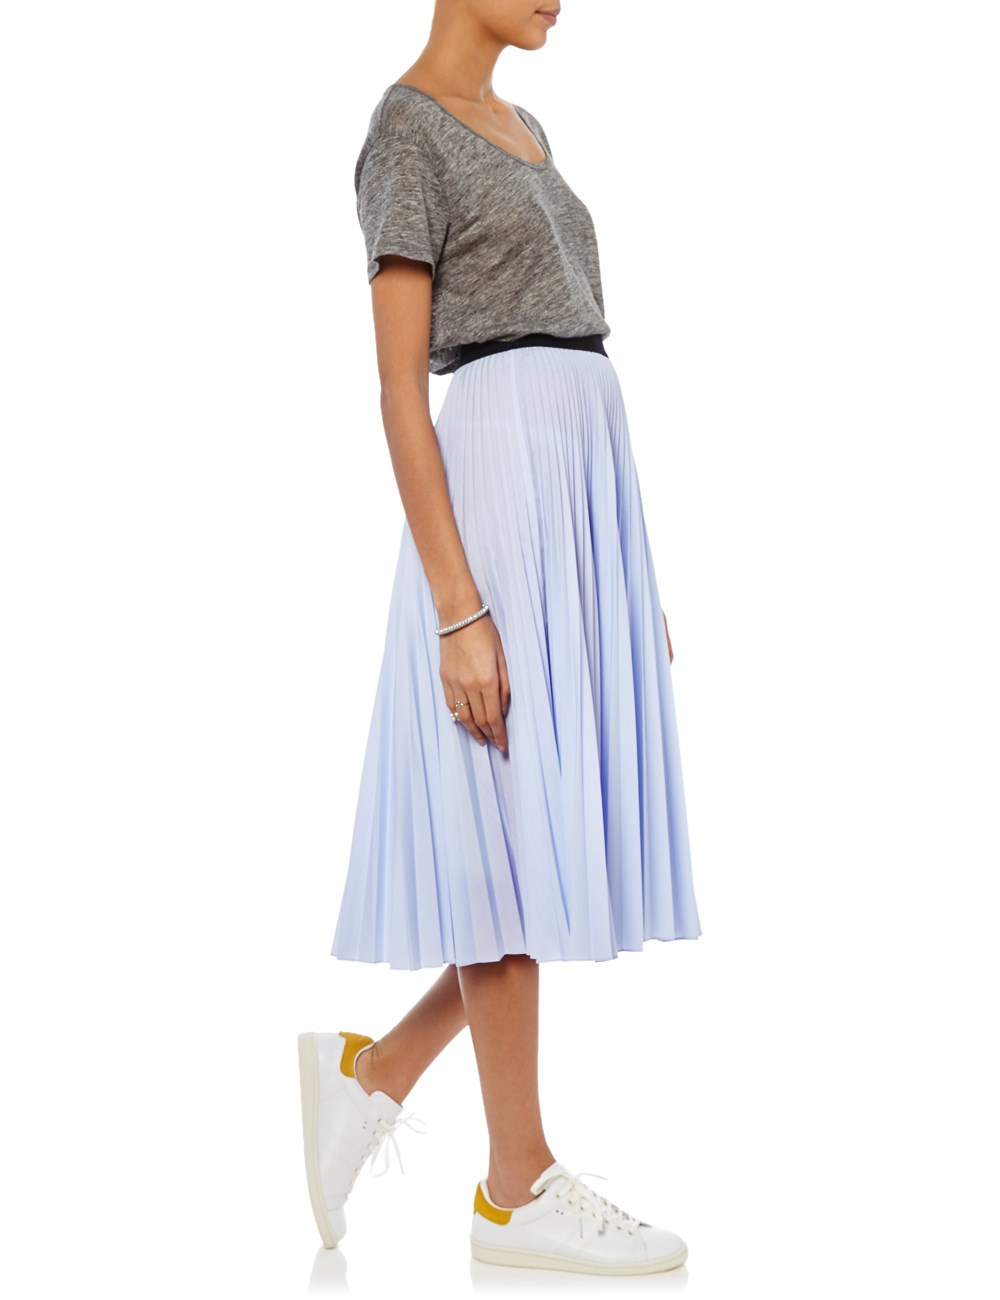 Tome Light Blue Accordion Pleat Skirt in Blue | Lyst